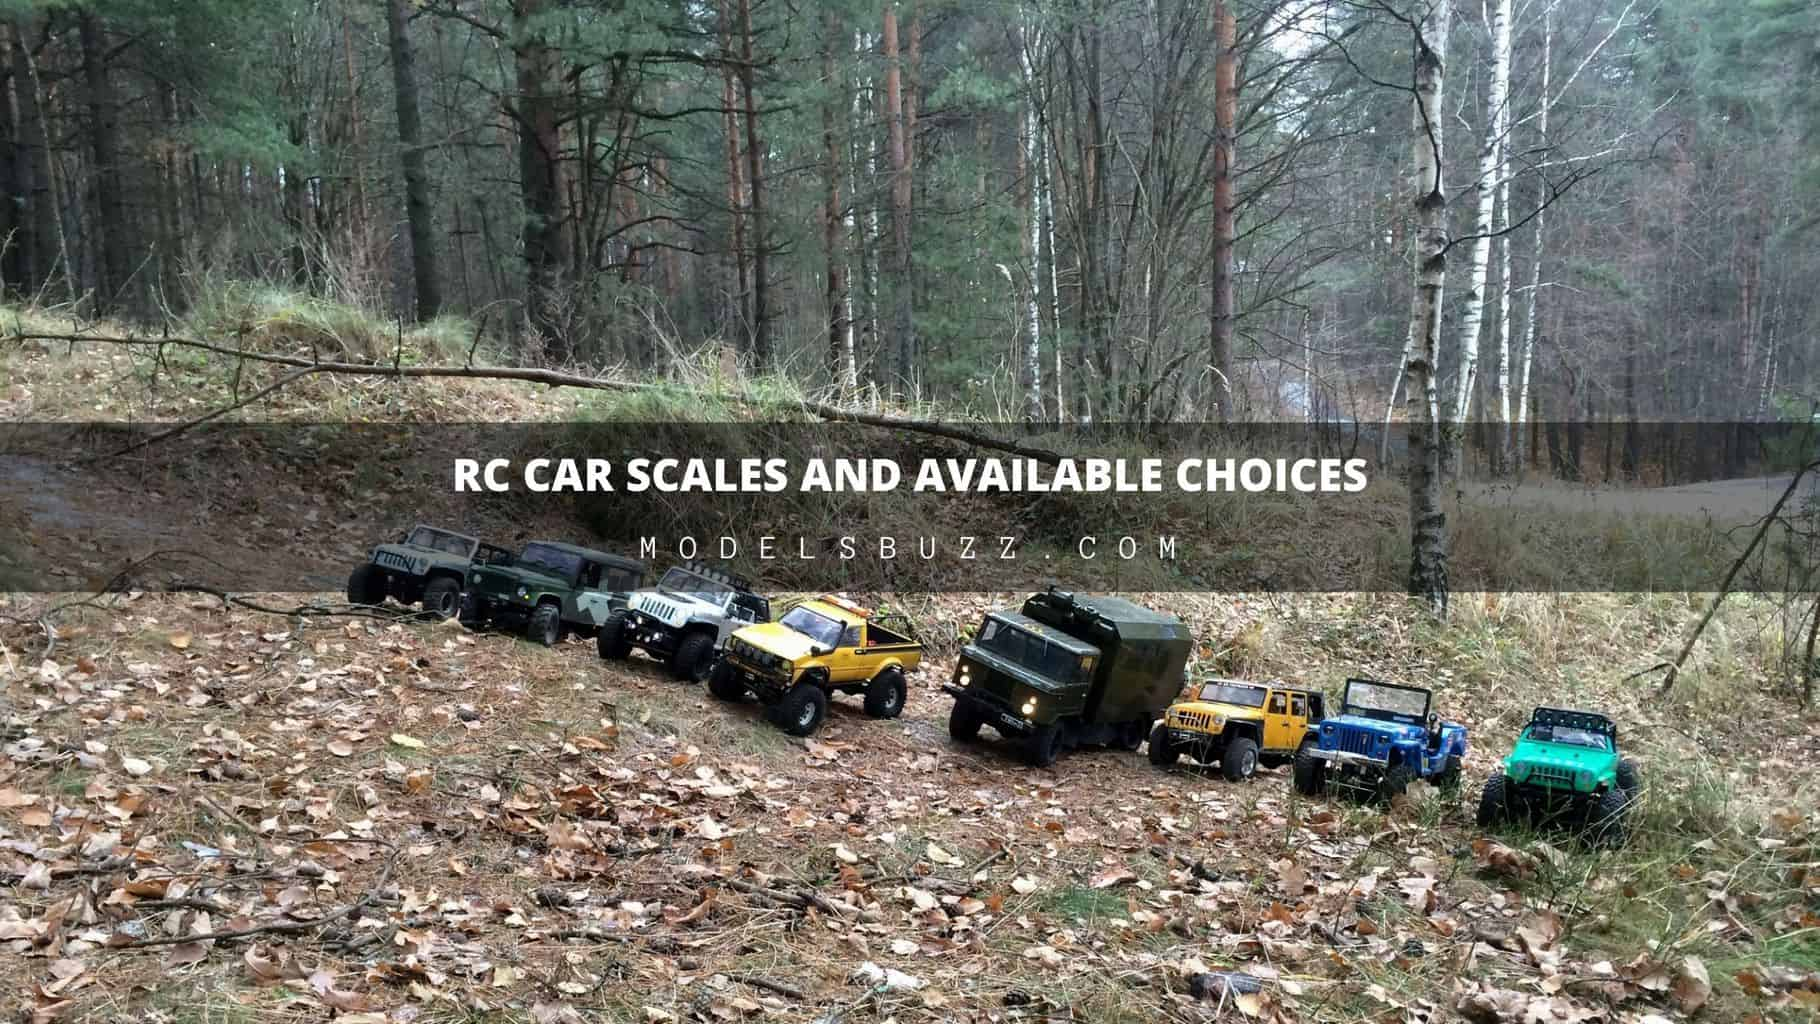 RC Car Scales and Available Choices